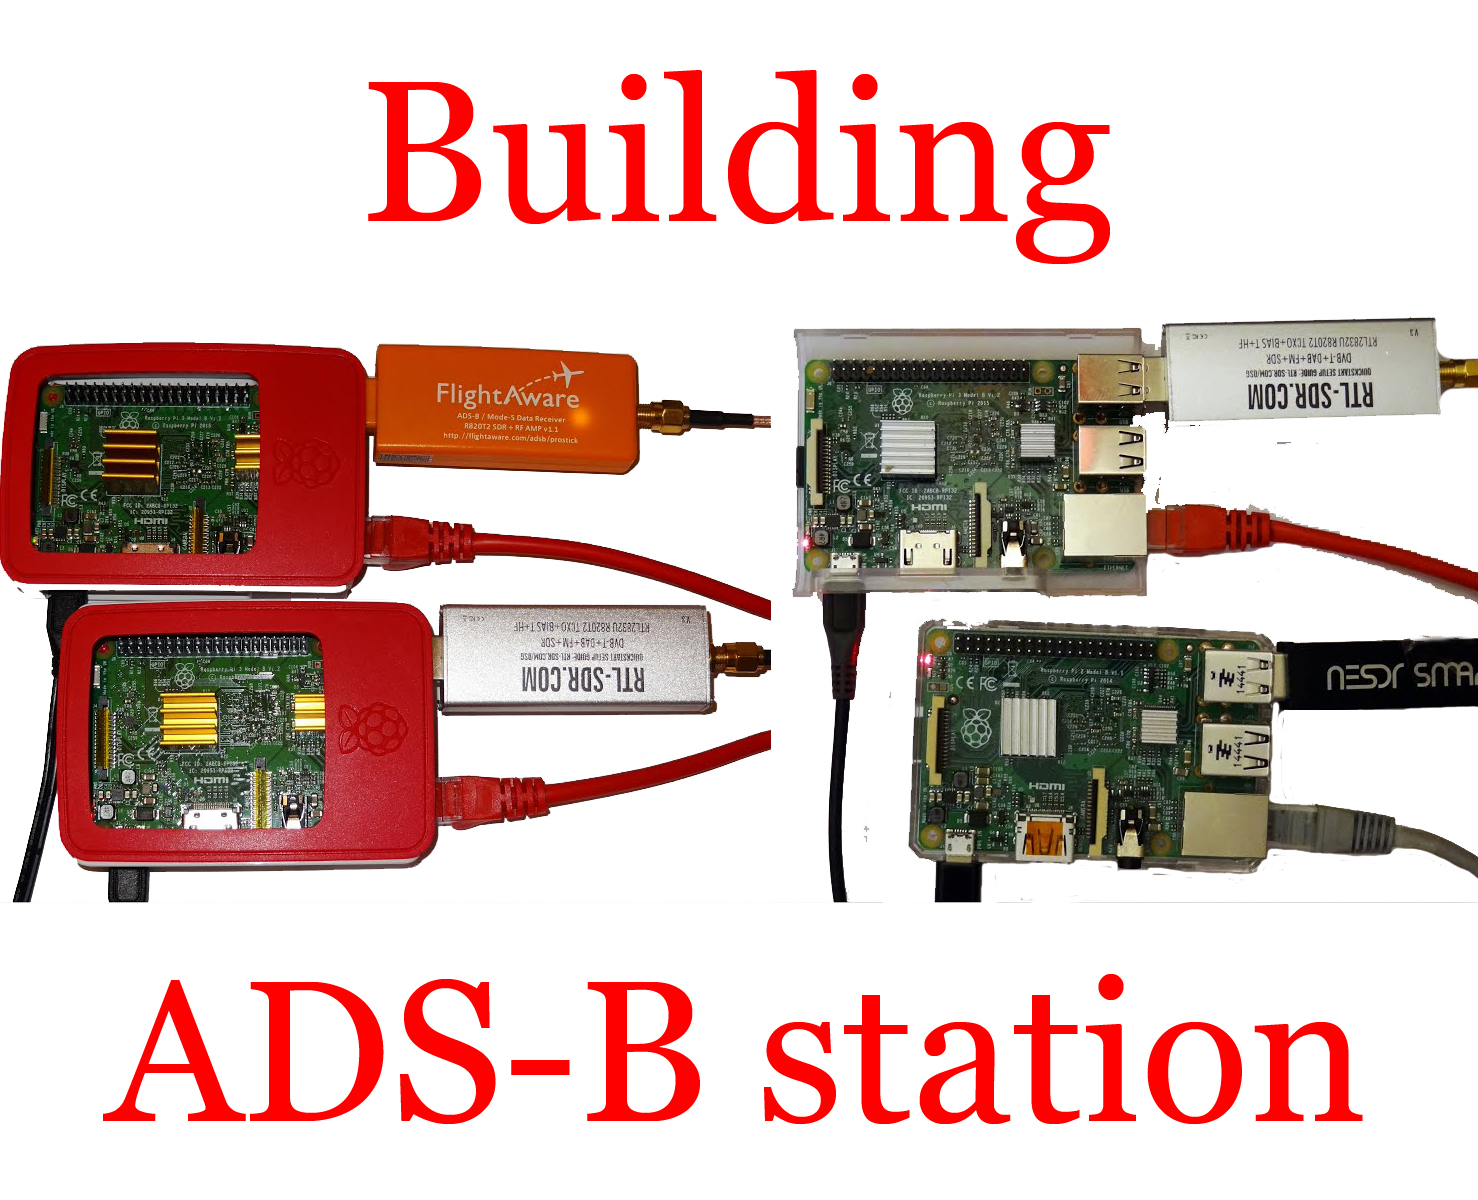 Radio for Everyone: Building an ADS-B station